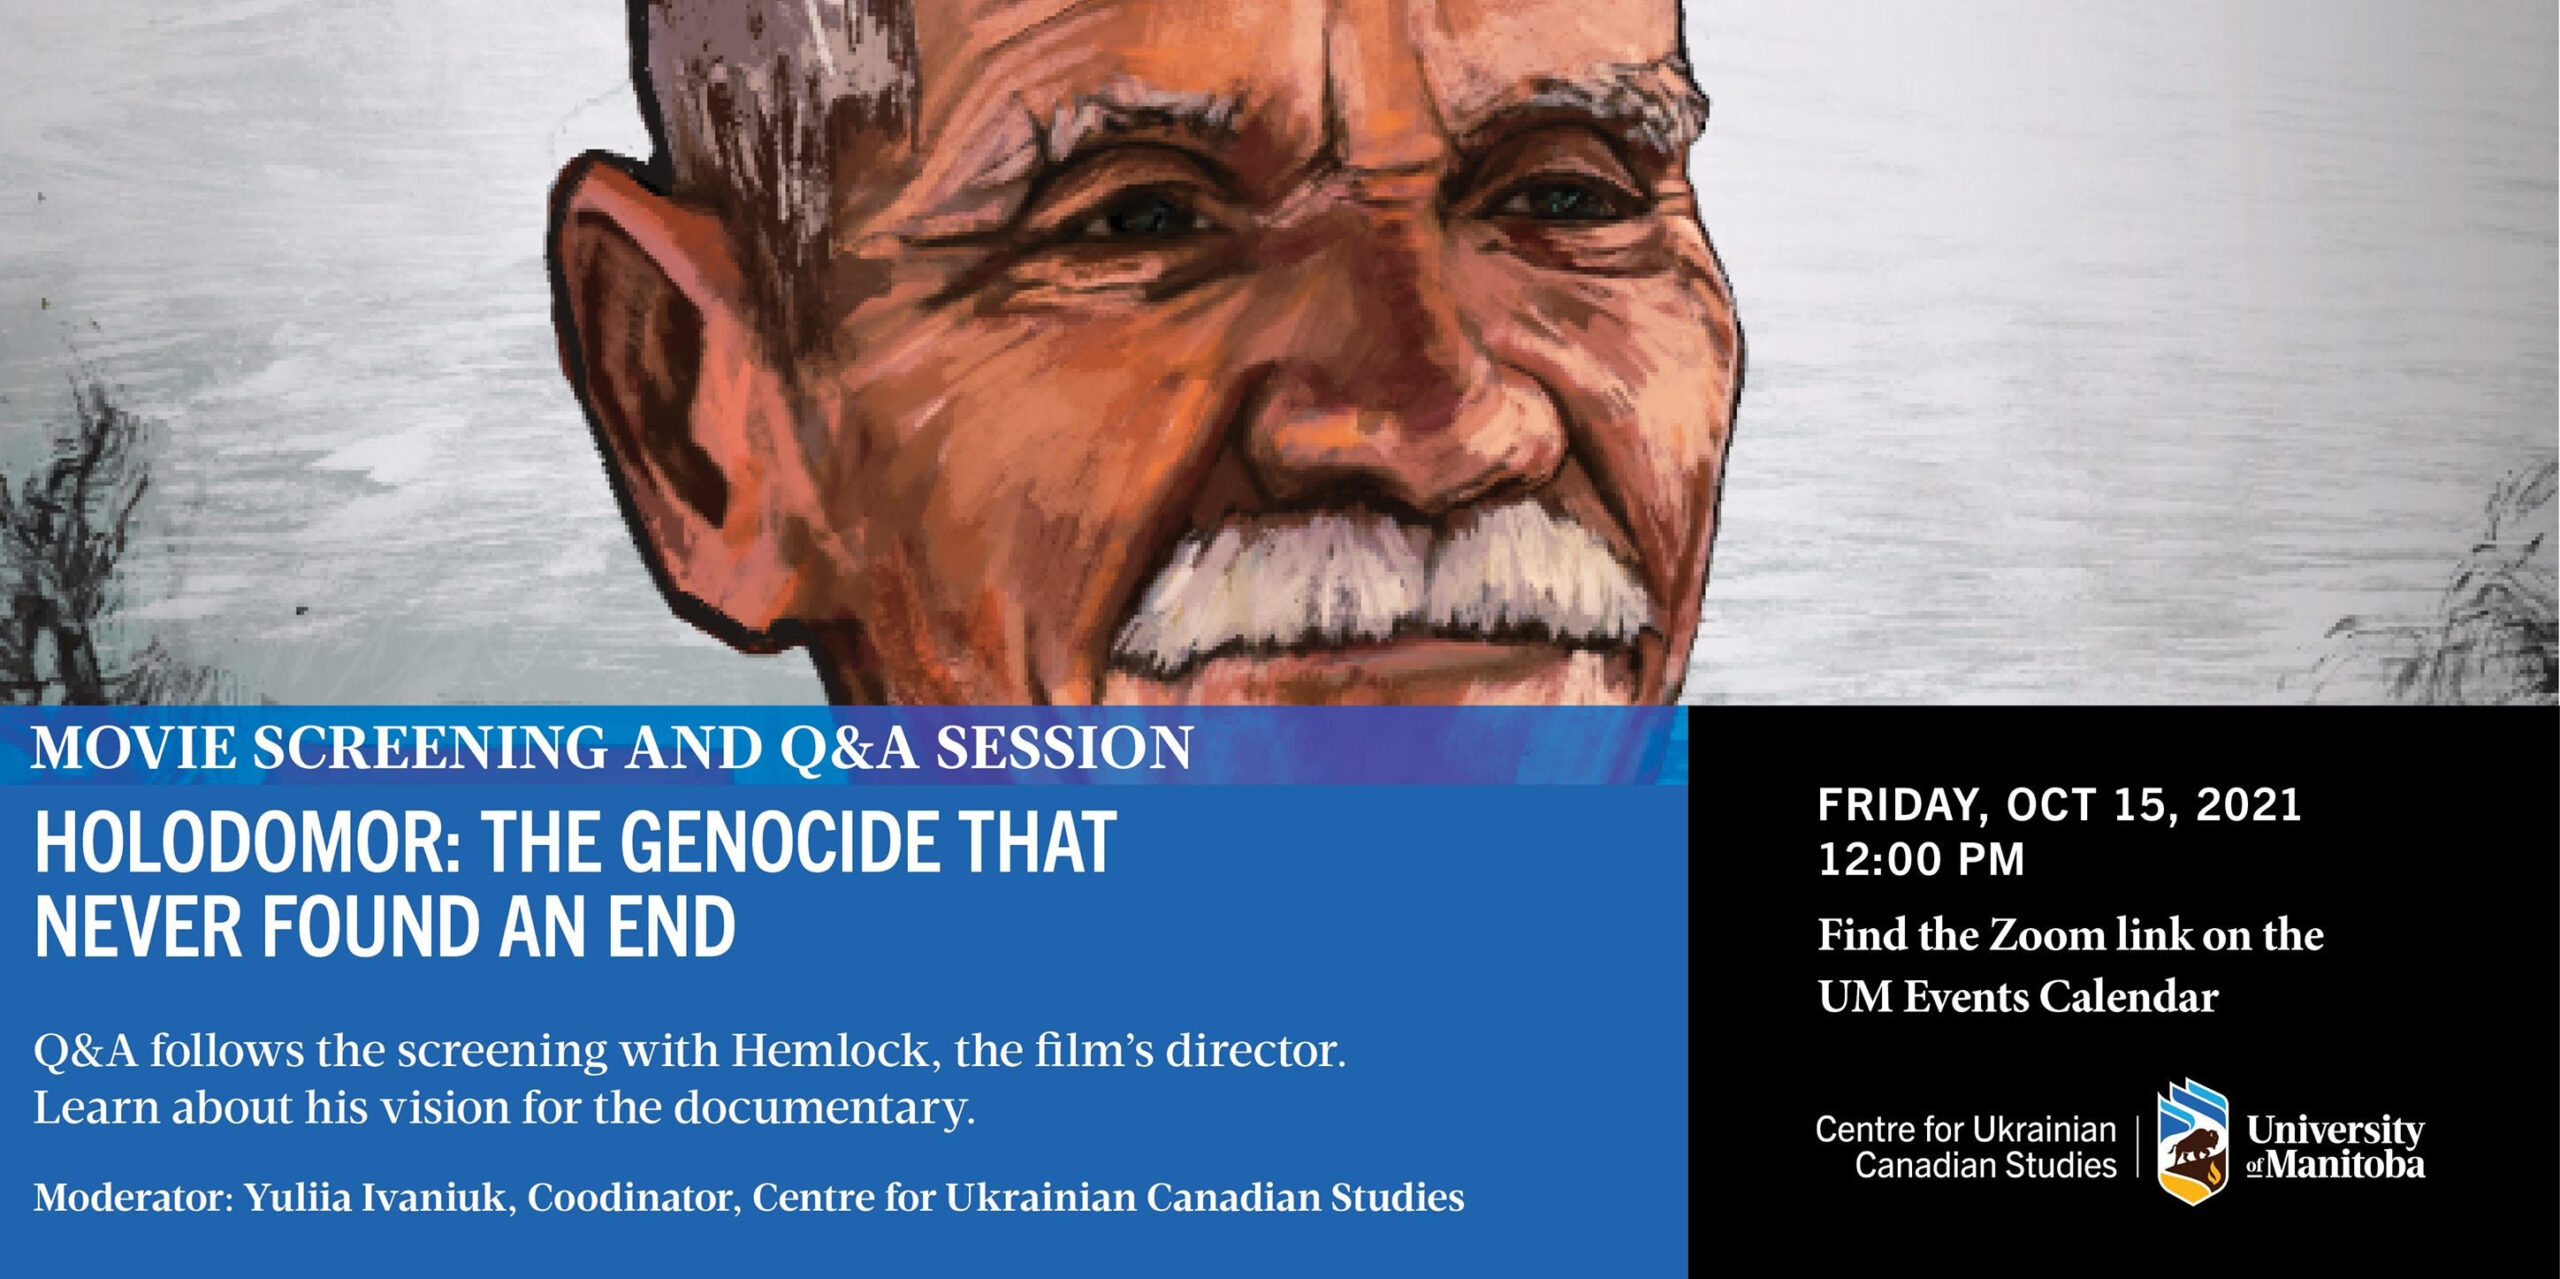 Holodomor: The Genocide That Never Found an End